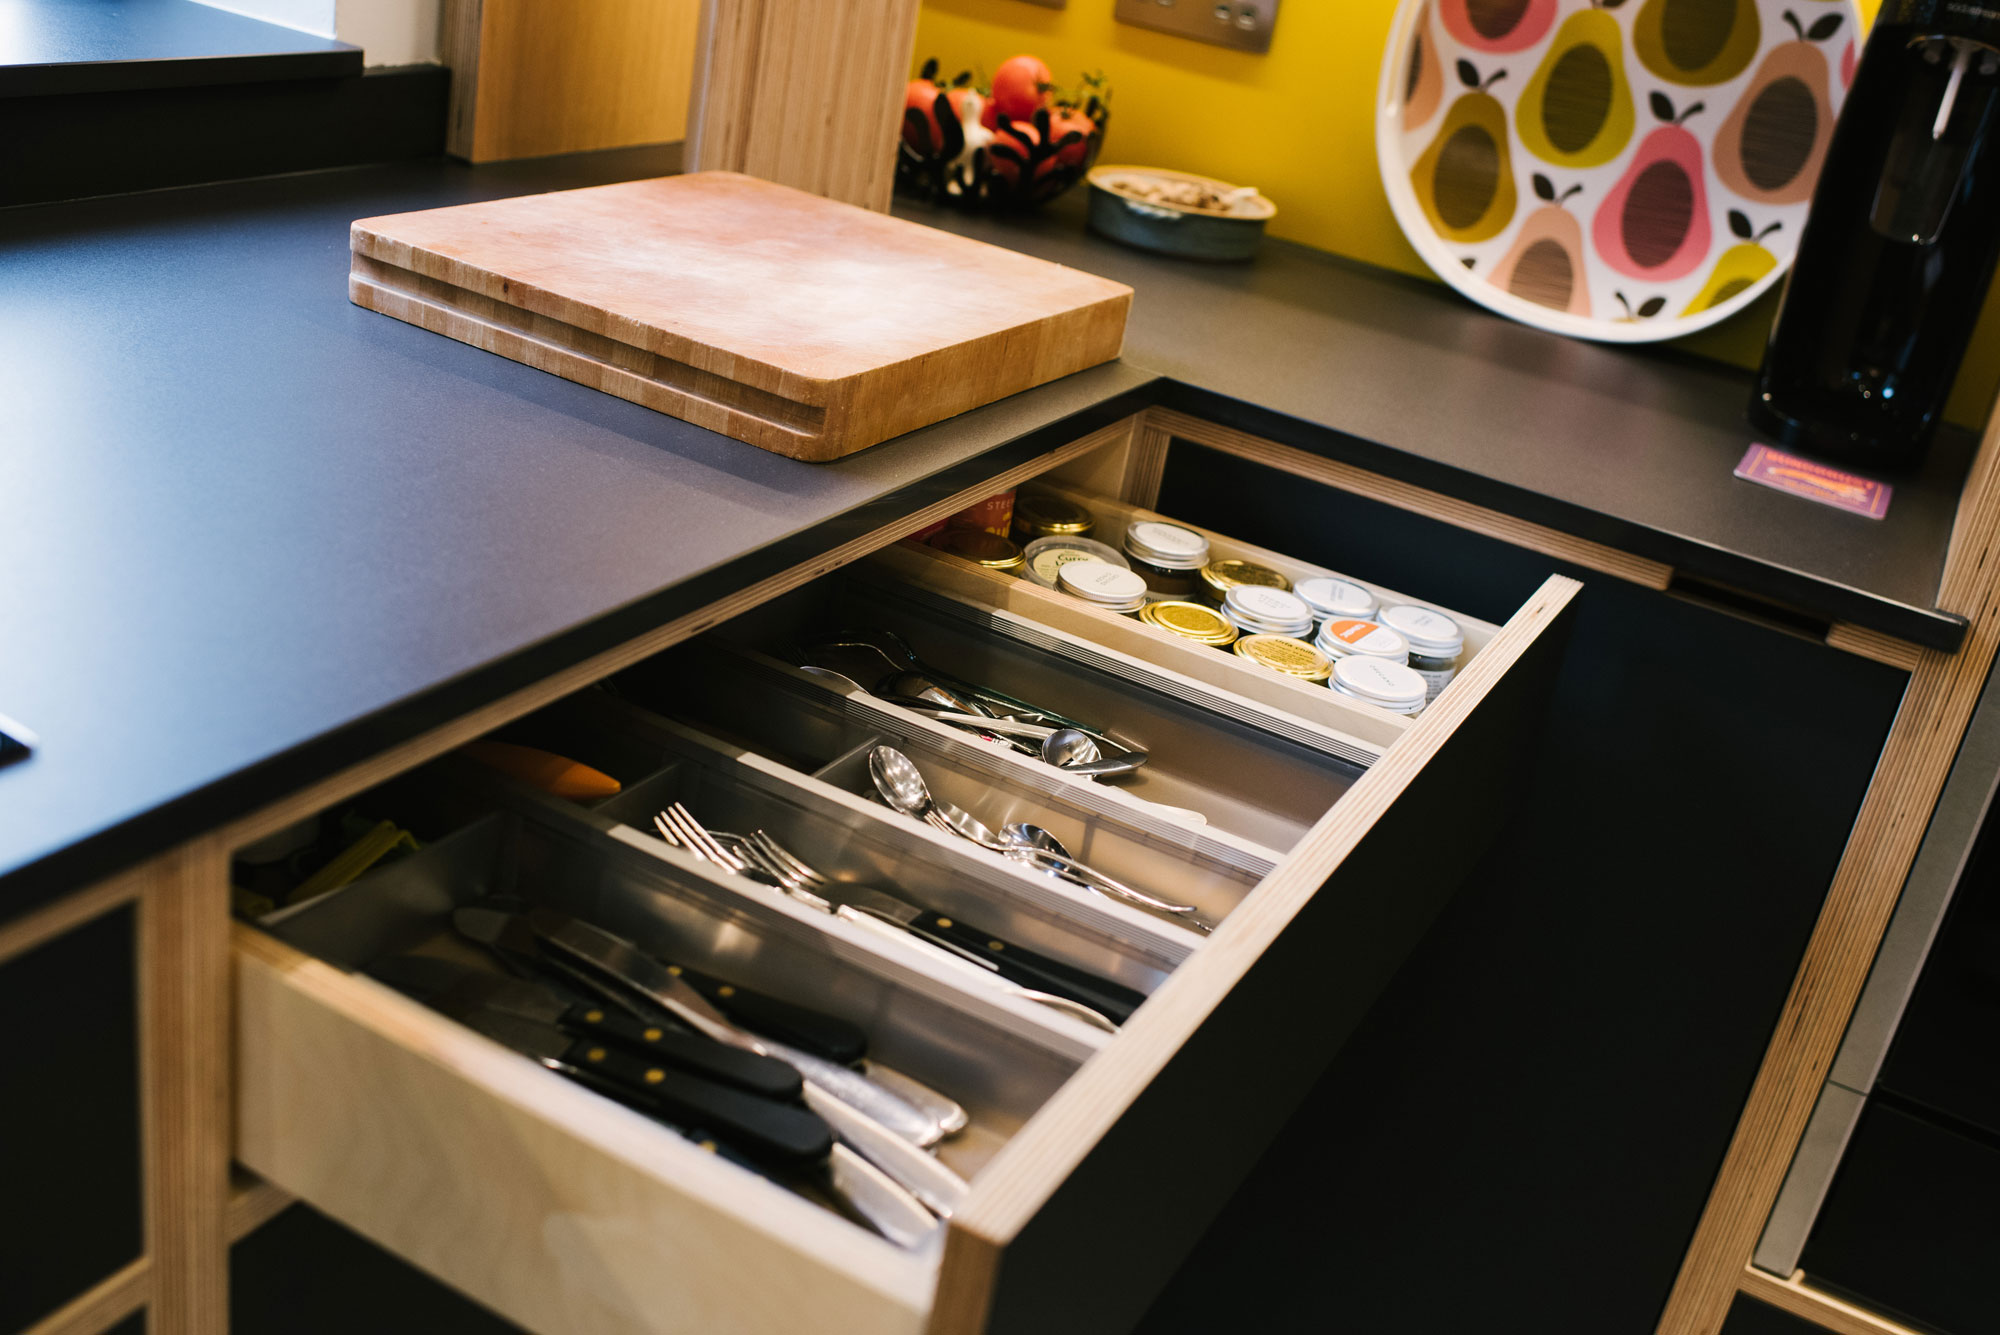 Cutlery Drawer of Black Plywood Kitchen with Yellow Splashback